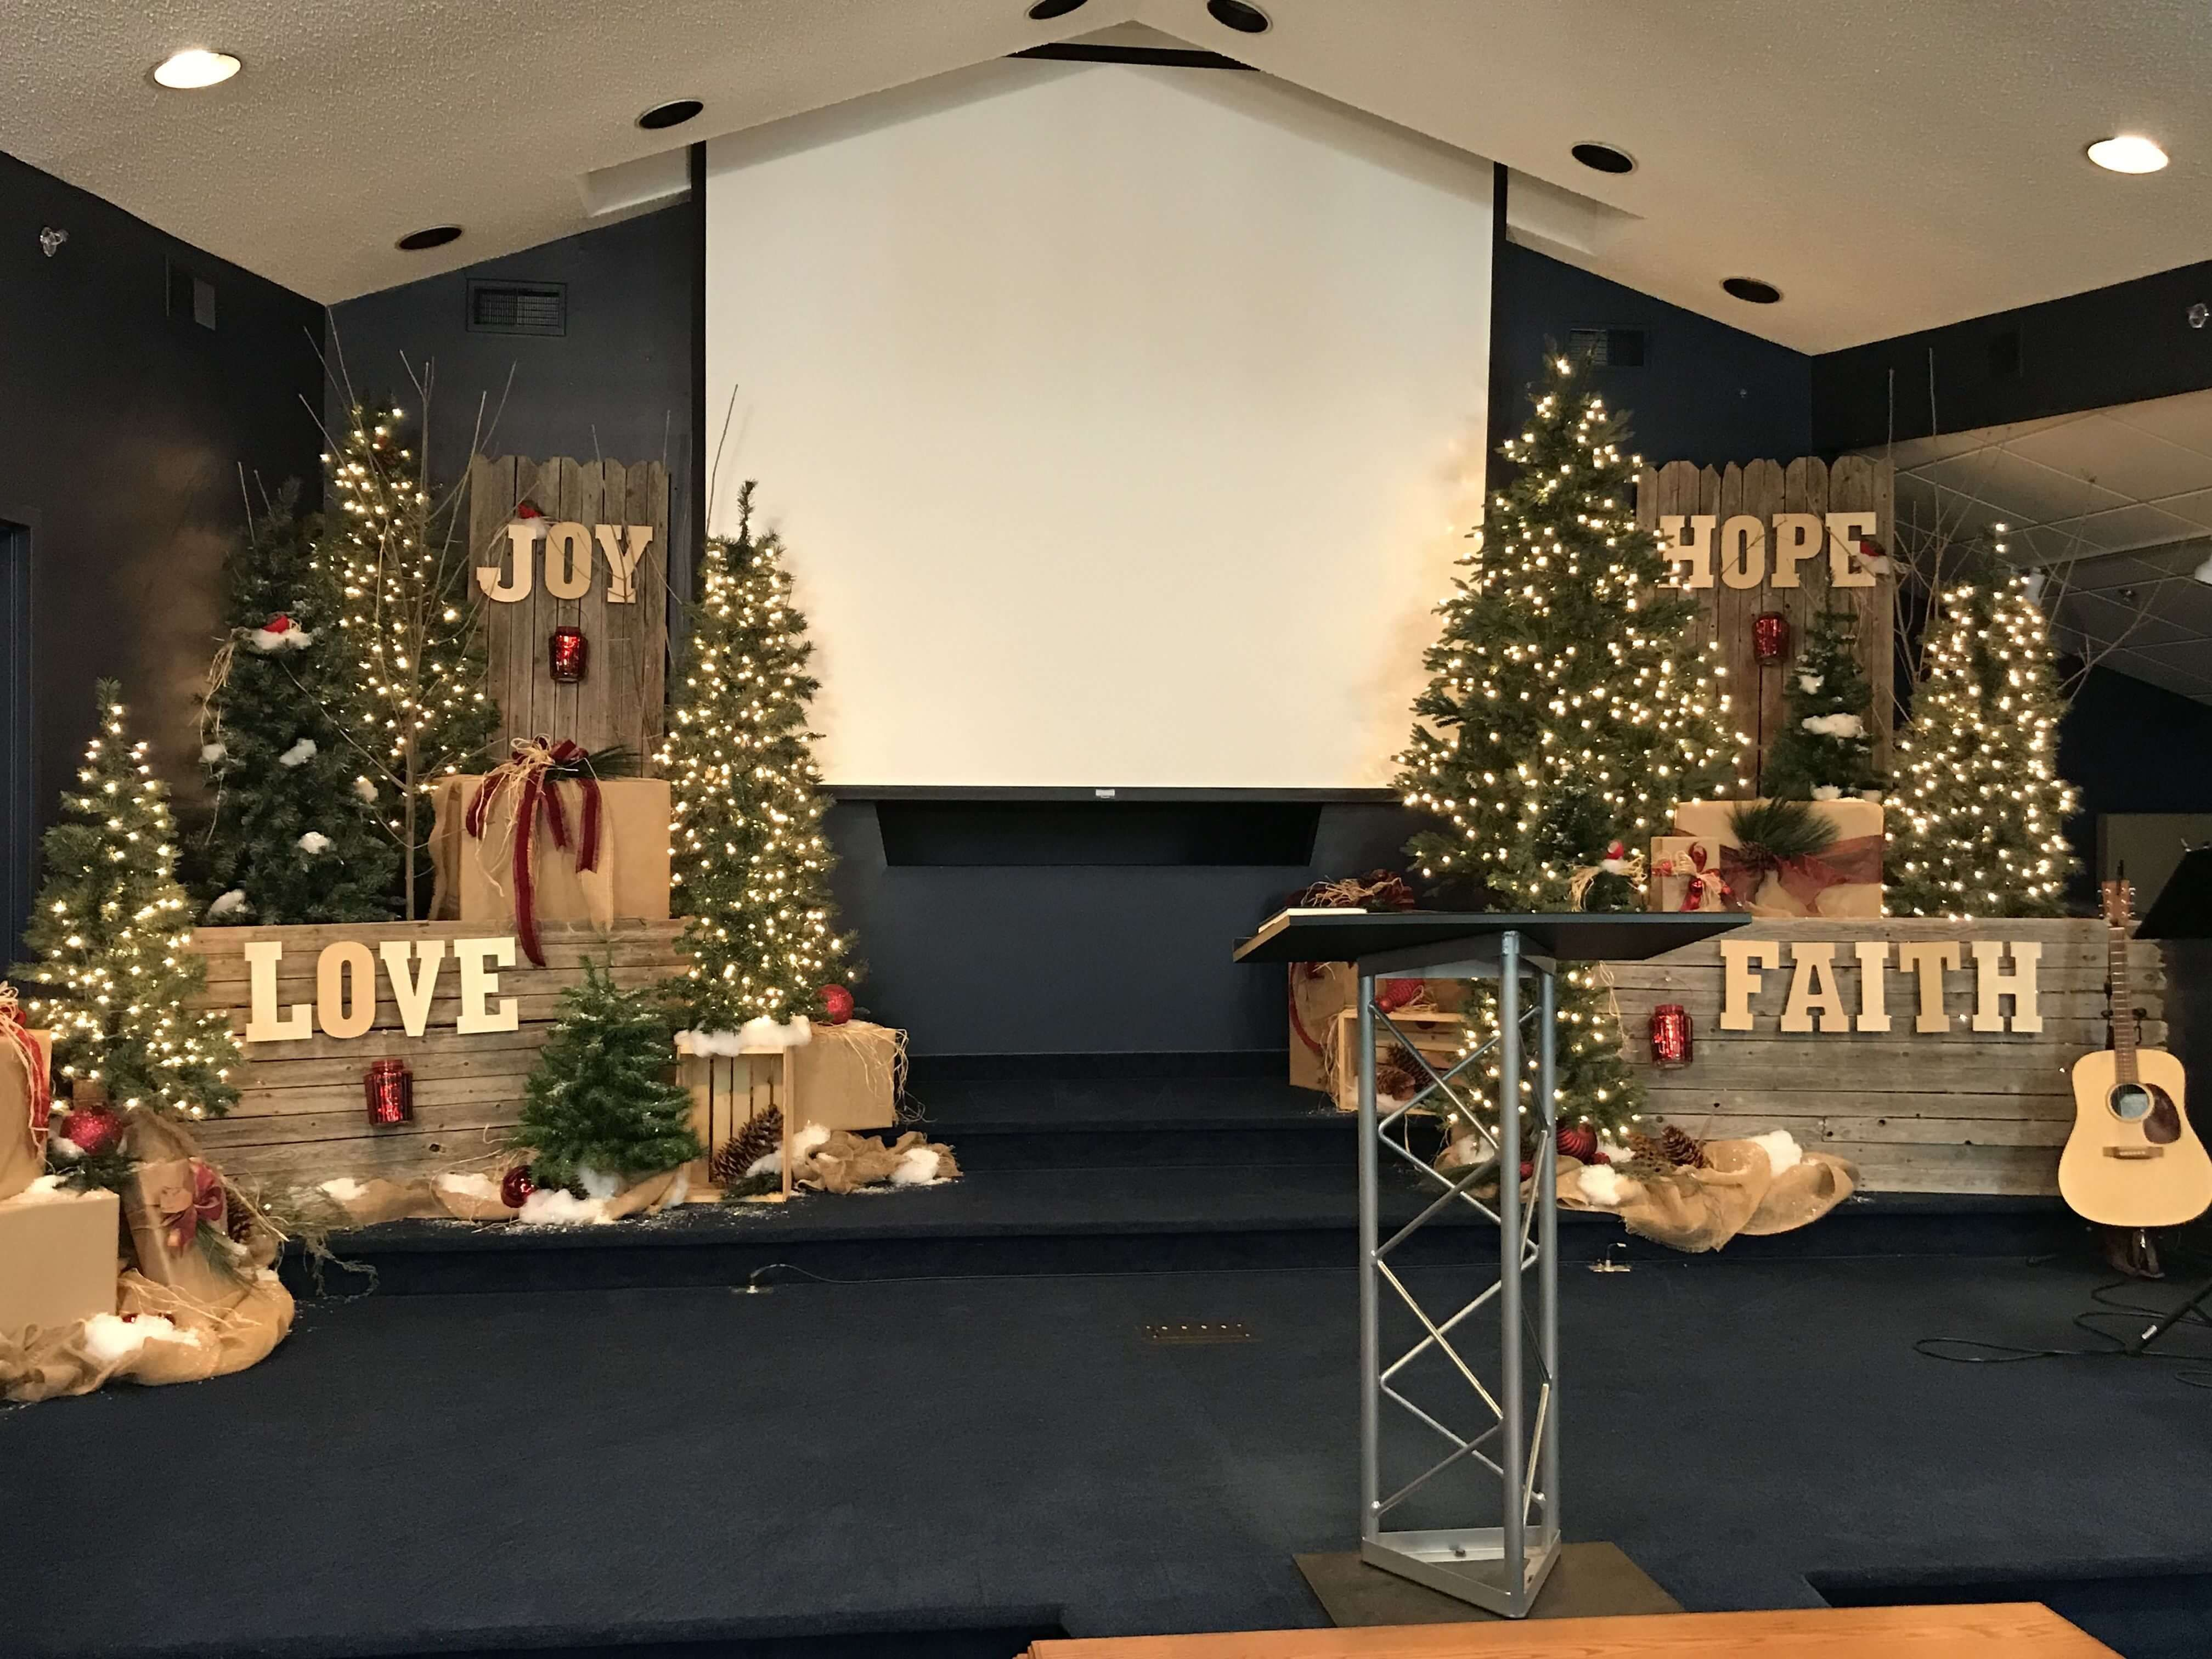 6 Christmas Decorating Church Sanctuary In 2020 Church Christmas Decorations Christmas Stage Decorations Christmas Stage